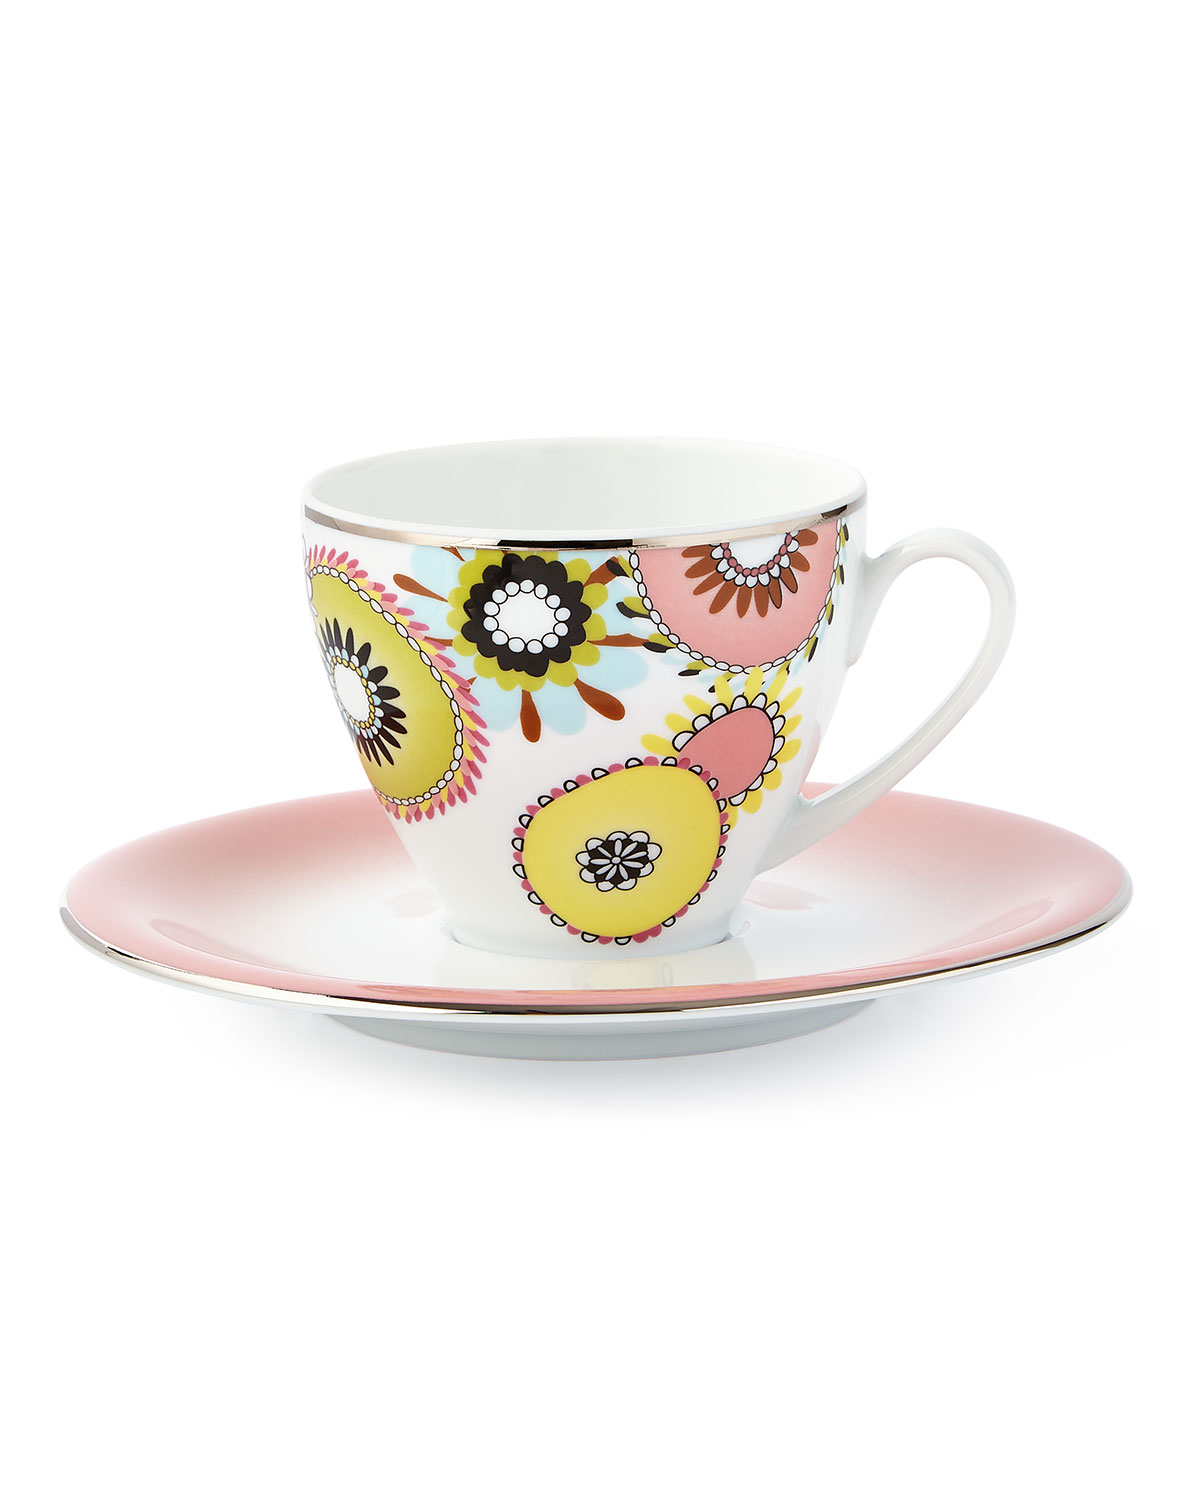 Missoni Margherita Teacup Saucer